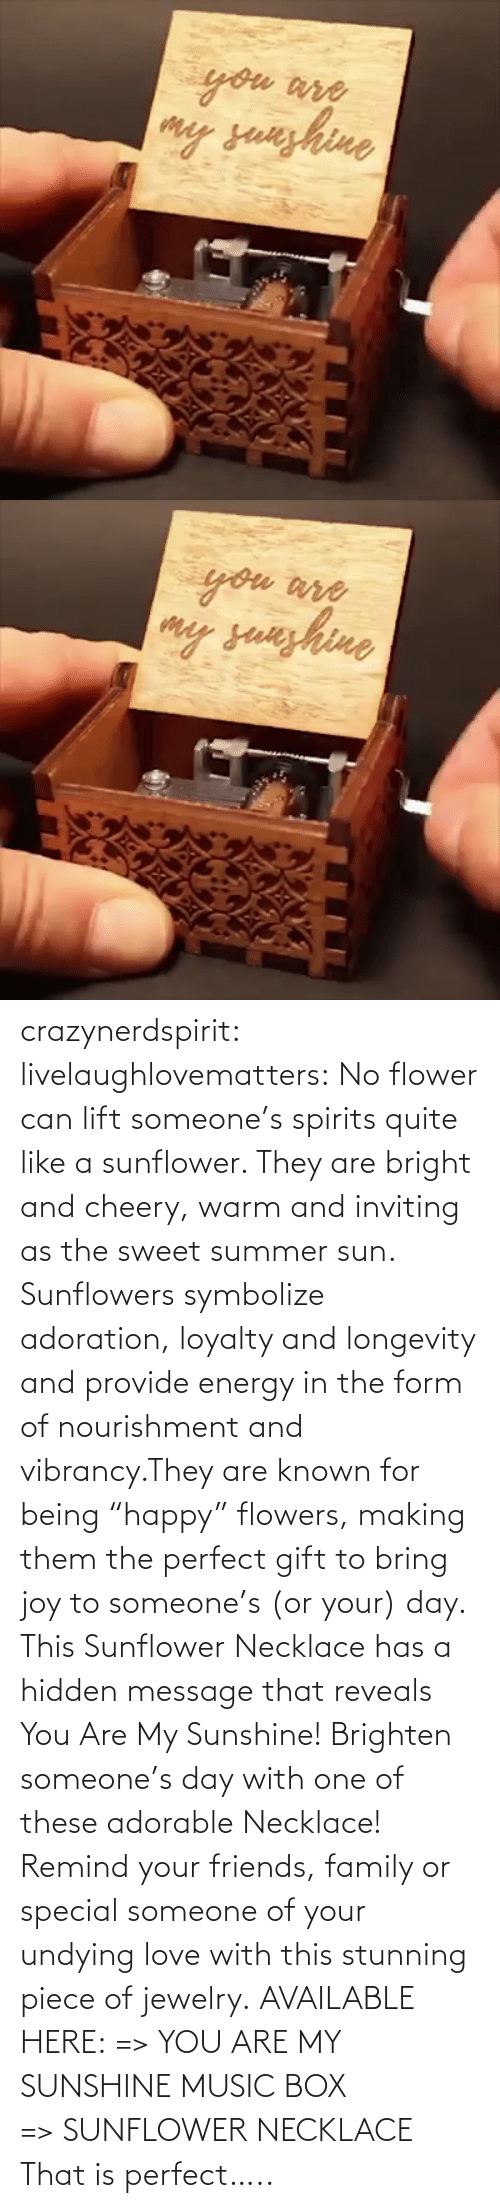 "Adorable: crazynerdspirit: livelaughlovematters:   No flower can lift someone's spirits quite like a sunflower. They are bright and cheery, warm and inviting as the sweet summer sun. Sunflowers symbolize adoration, loyalty and longevity and provide energy in the form of nourishment and vibrancy.They are known for being ""happy"" flowers, making them the perfect gift to bring joy to someone's (or your) day. This Sunflower Necklace has a hidden message that reveals You Are My Sunshine! Brighten someone's day with one of these adorable Necklace! Remind your friends, family or special someone of your undying love with this stunning piece of jewelry. AVAILABLE HERE: => YOU ARE MY SUNSHINE MUSIC BOX => SUNFLOWER NECKLACE    That is perfect….."